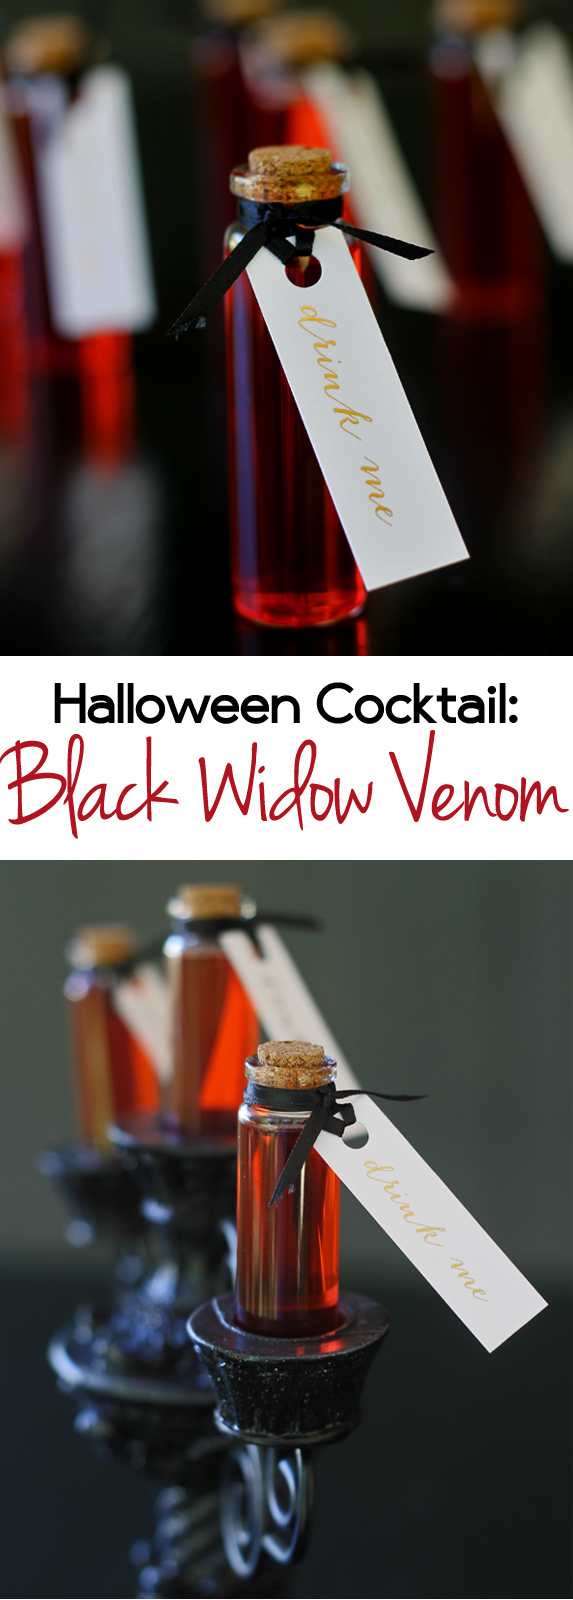 halloween cocktail idea: black widow venom